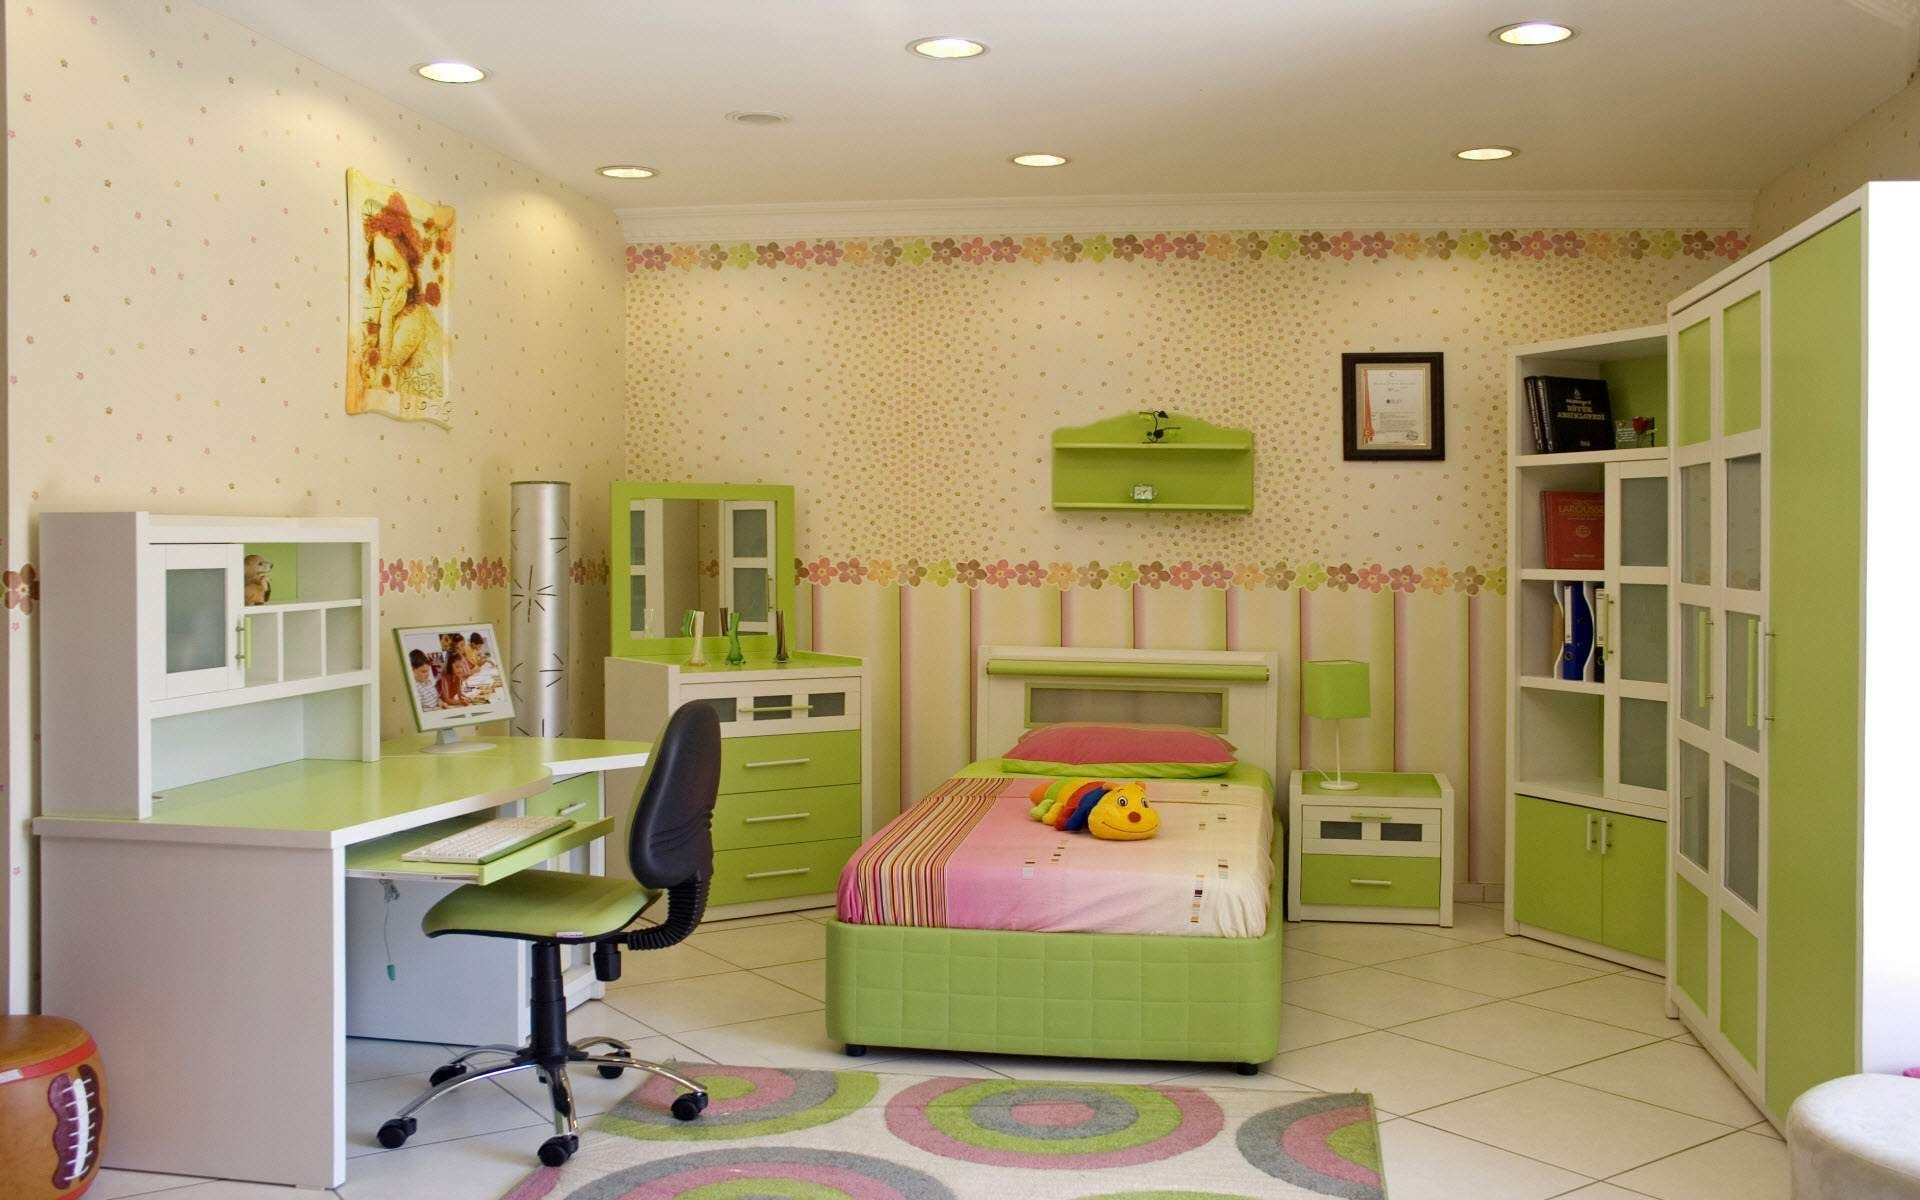 bed pillow doll cabinet table chair rug lamps wallpaper | Home ...